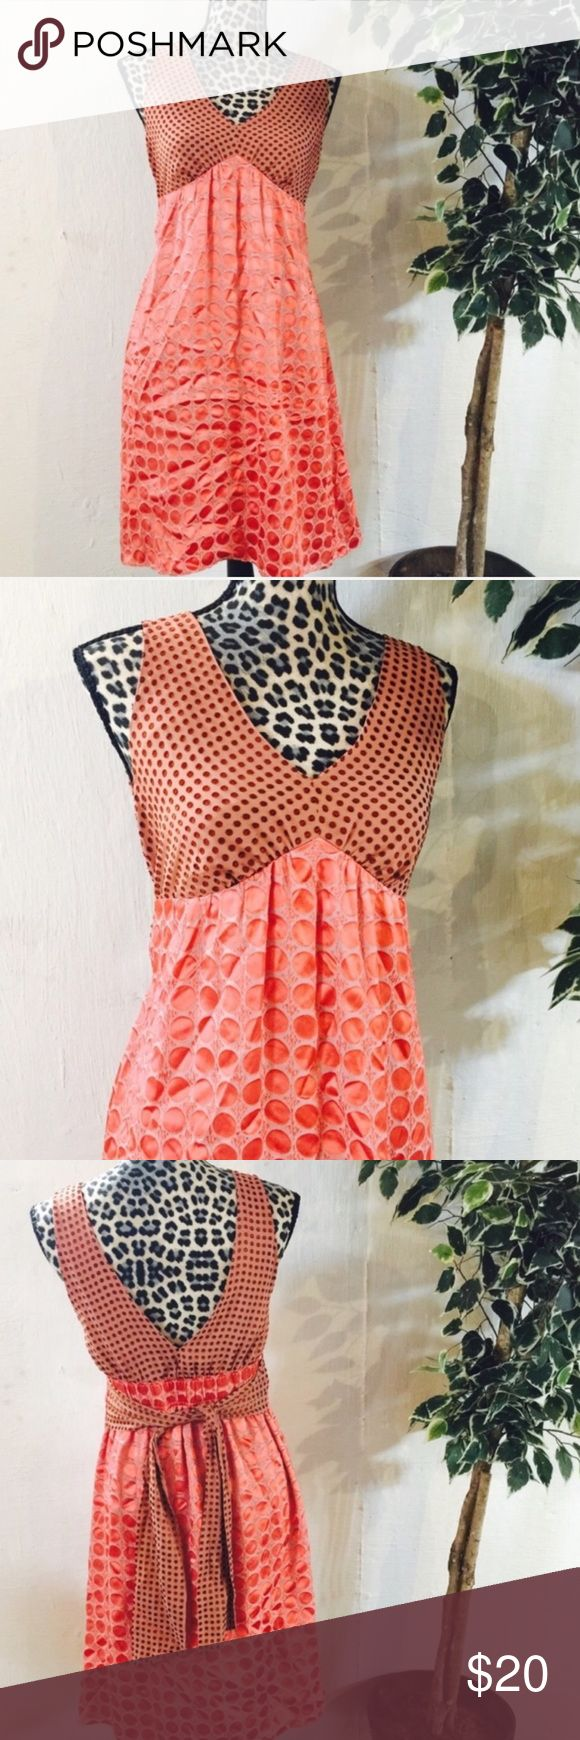 "⚡️SALE⚡️ The Limited Peach Polka Dot Silk Dress Made From Silk And Rayon, This Beautiful Dress For Any Occasion!! Dress Is Approx 36 1/2"" In Length And 15"" Across The Bust (Or 30"" Total Inches Around). Size Women's 4, Can Fit A Bit Larger. Excellent Condition Like New The Limited Dresses Midi"